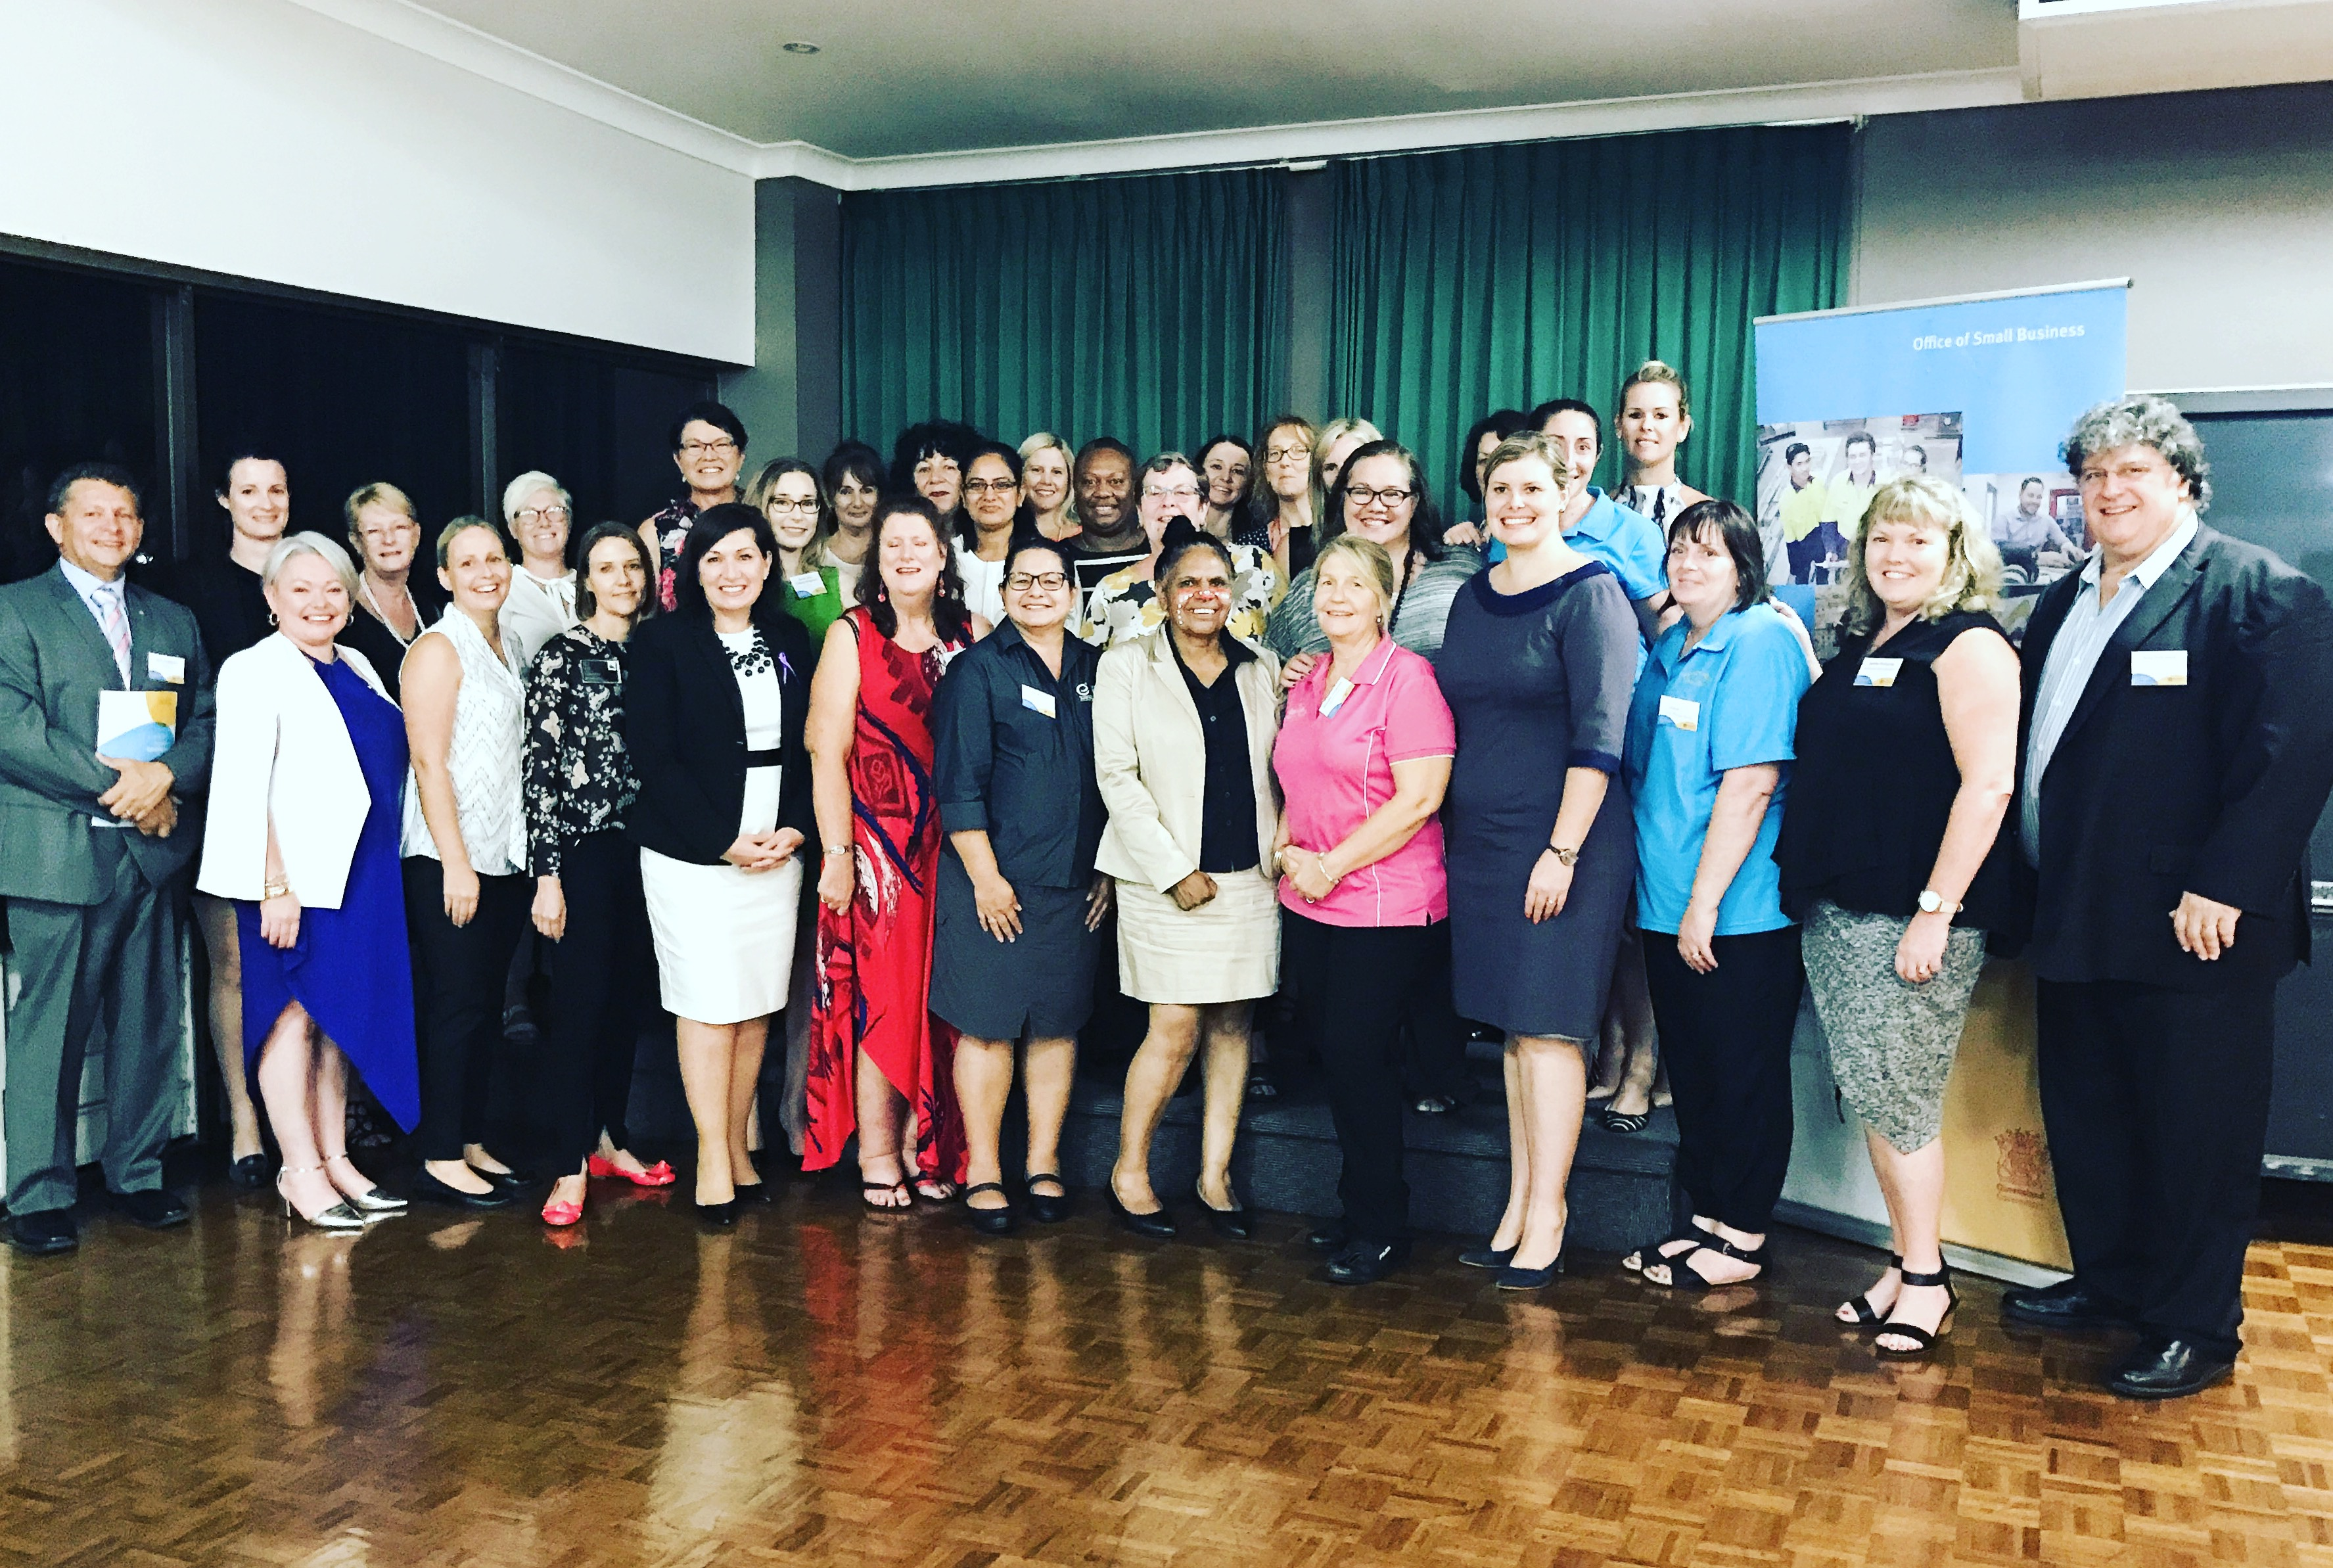 International Women's Day  Women in Business event in Pine Rivers.